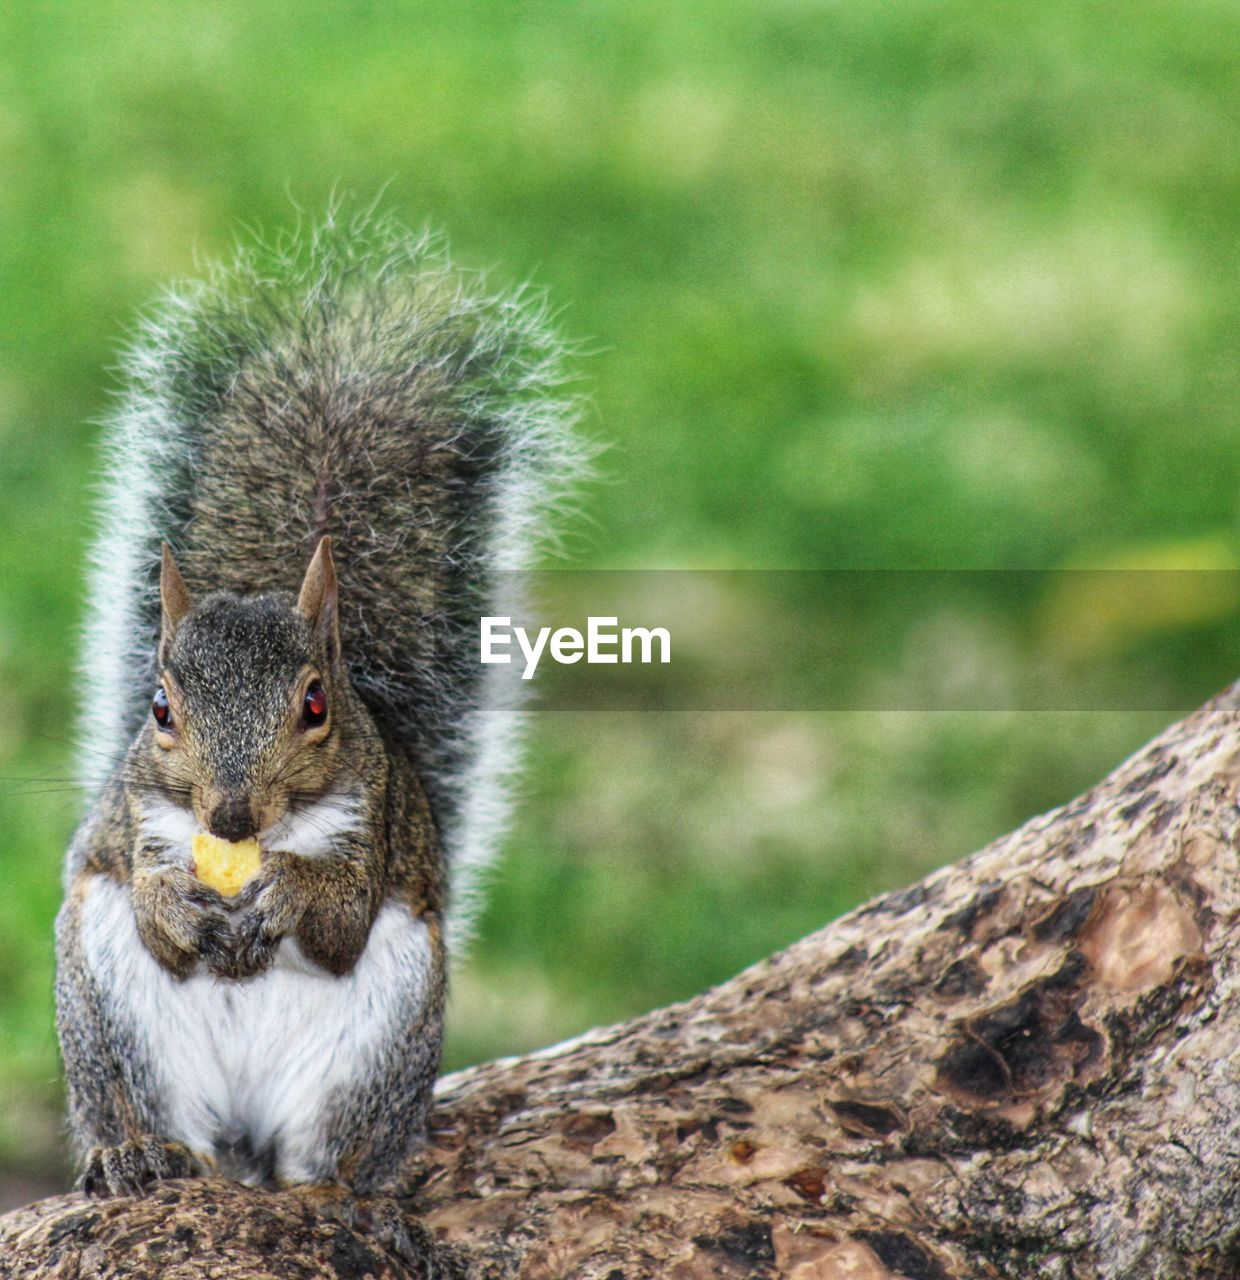 animal themes, animal, animal wildlife, one animal, animals in the wild, vertebrate, mammal, focus on foreground, rodent, squirrel, no people, nature, close-up, day, plant, outdoors, tree, land, tree trunk, trunk, whisker